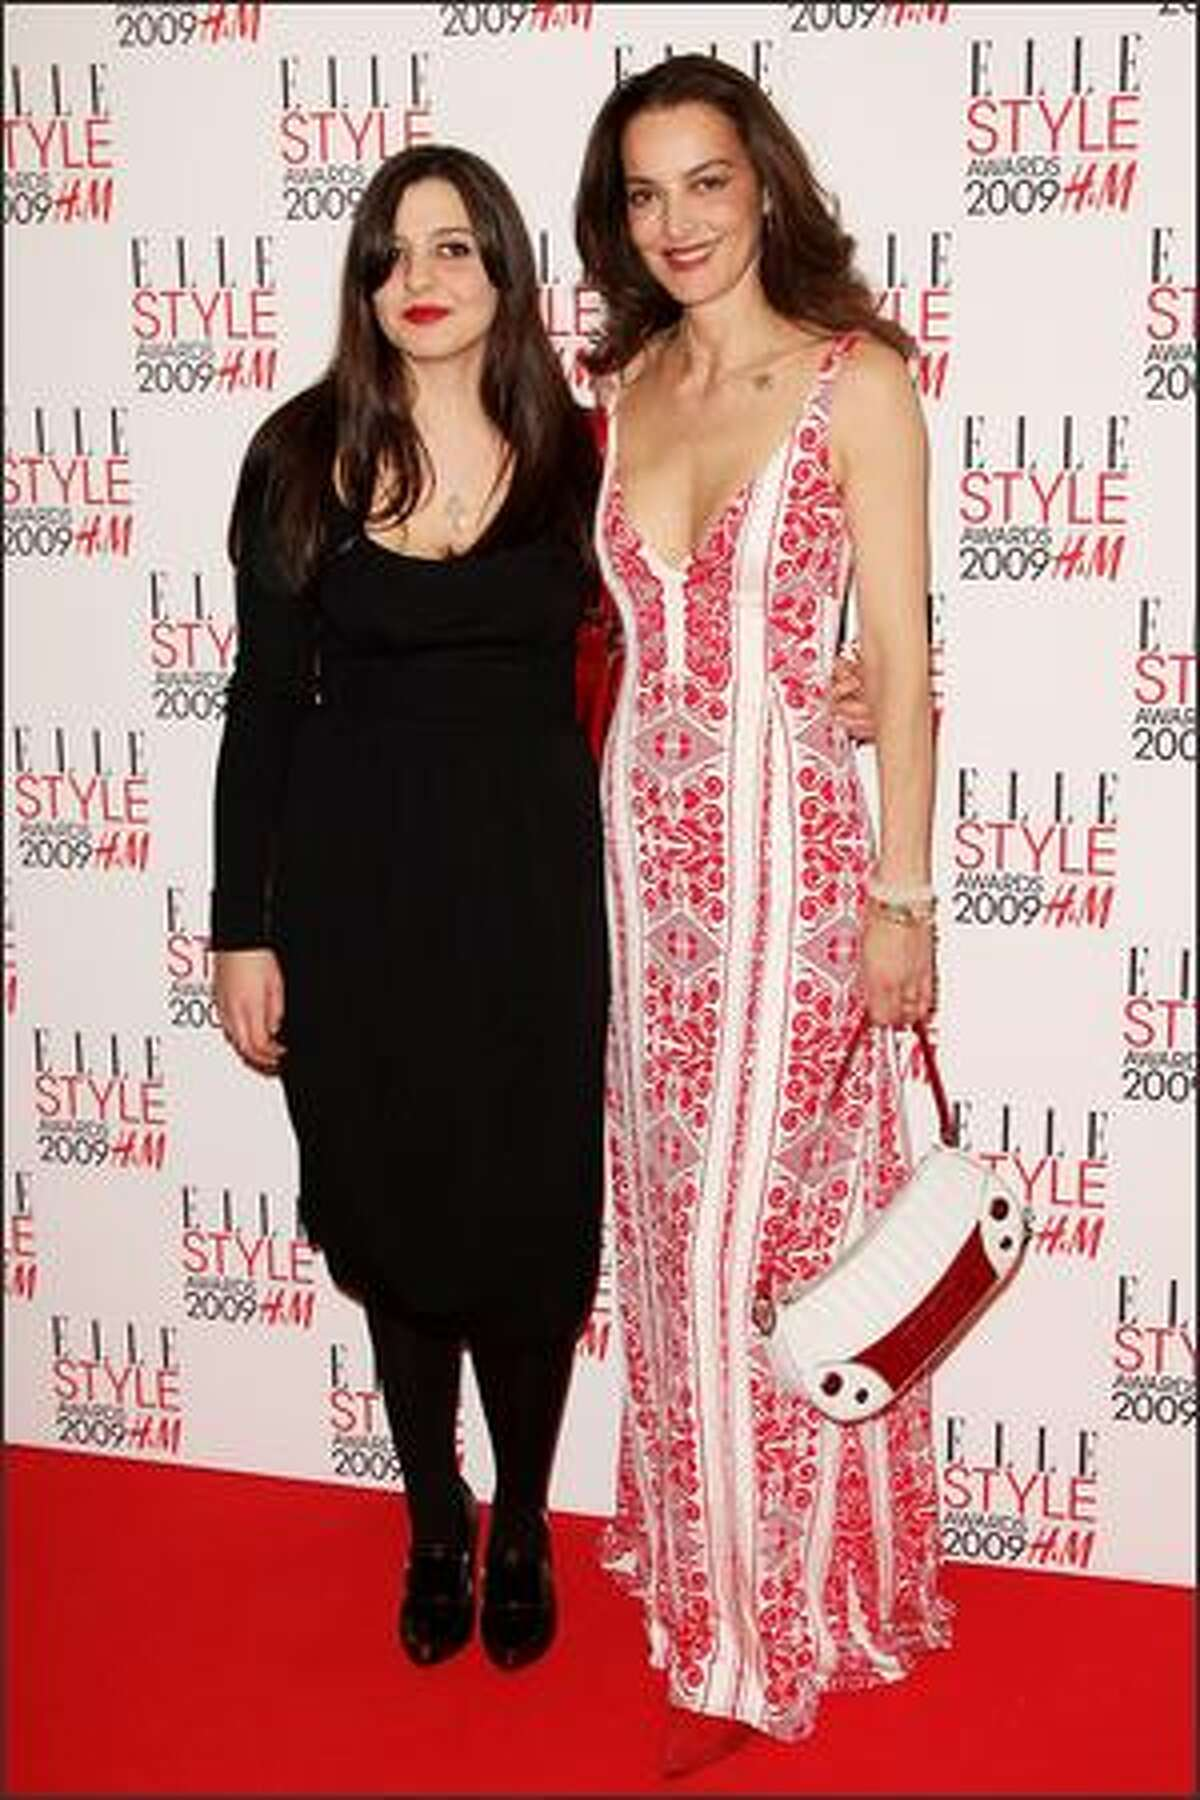 (L-R) Paloma Bailey and Catherine Bailey attend The Elle Style Awards 2009 held at Big Sky Studios, Caledonian Road in London, England.